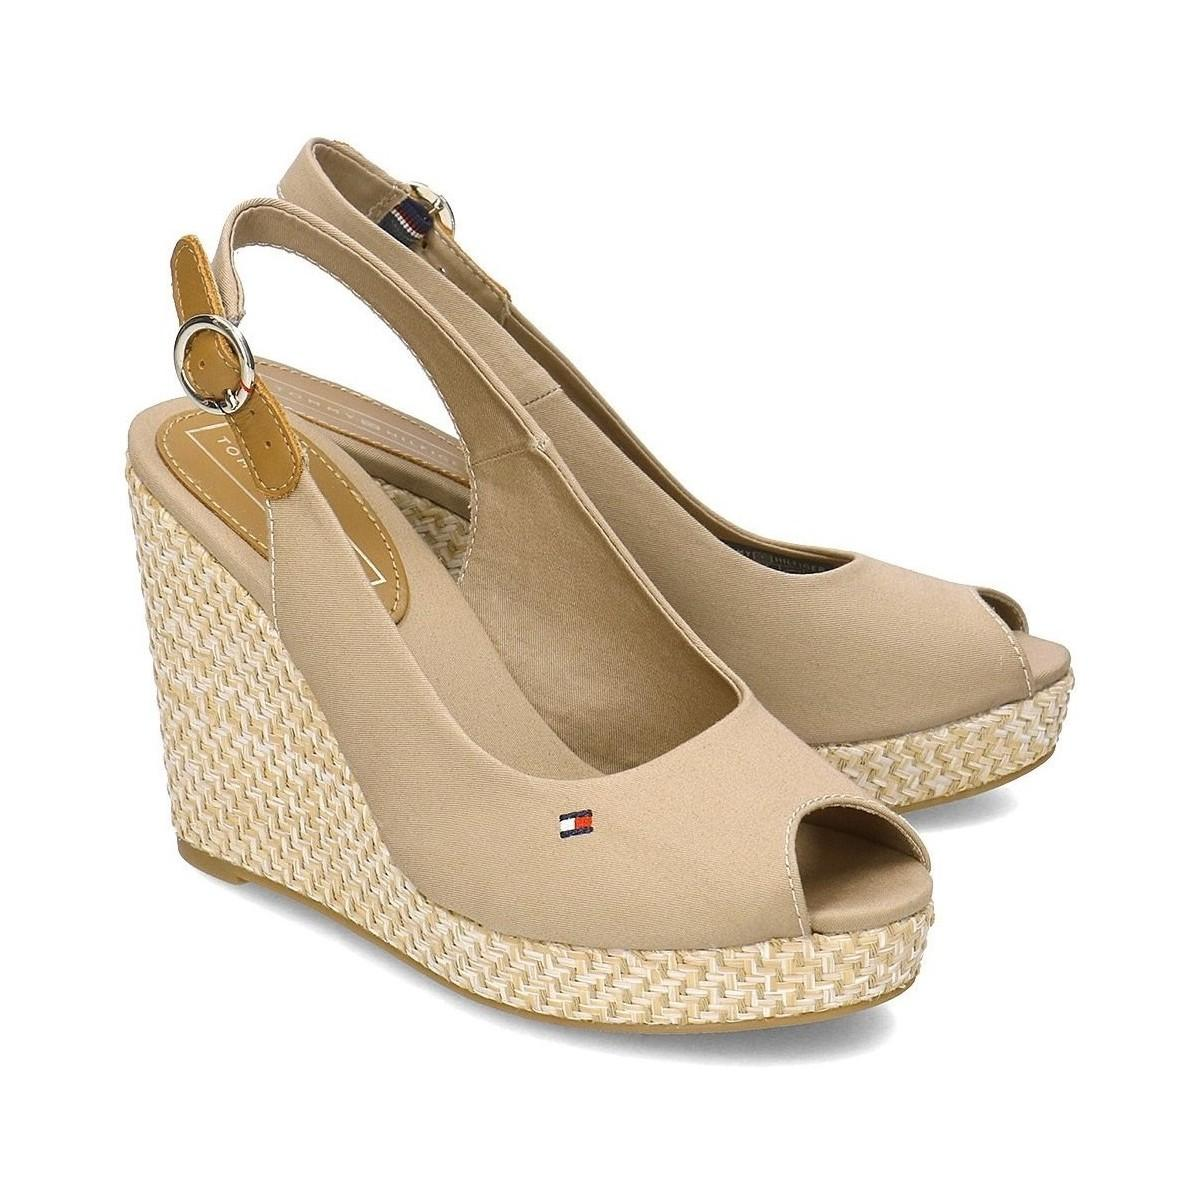 972eae9dd Tommy Hilfiger - Natural Iconic Elena Basic Sling Back Women s Clogs  (shoes) In Beige. View fullscreen